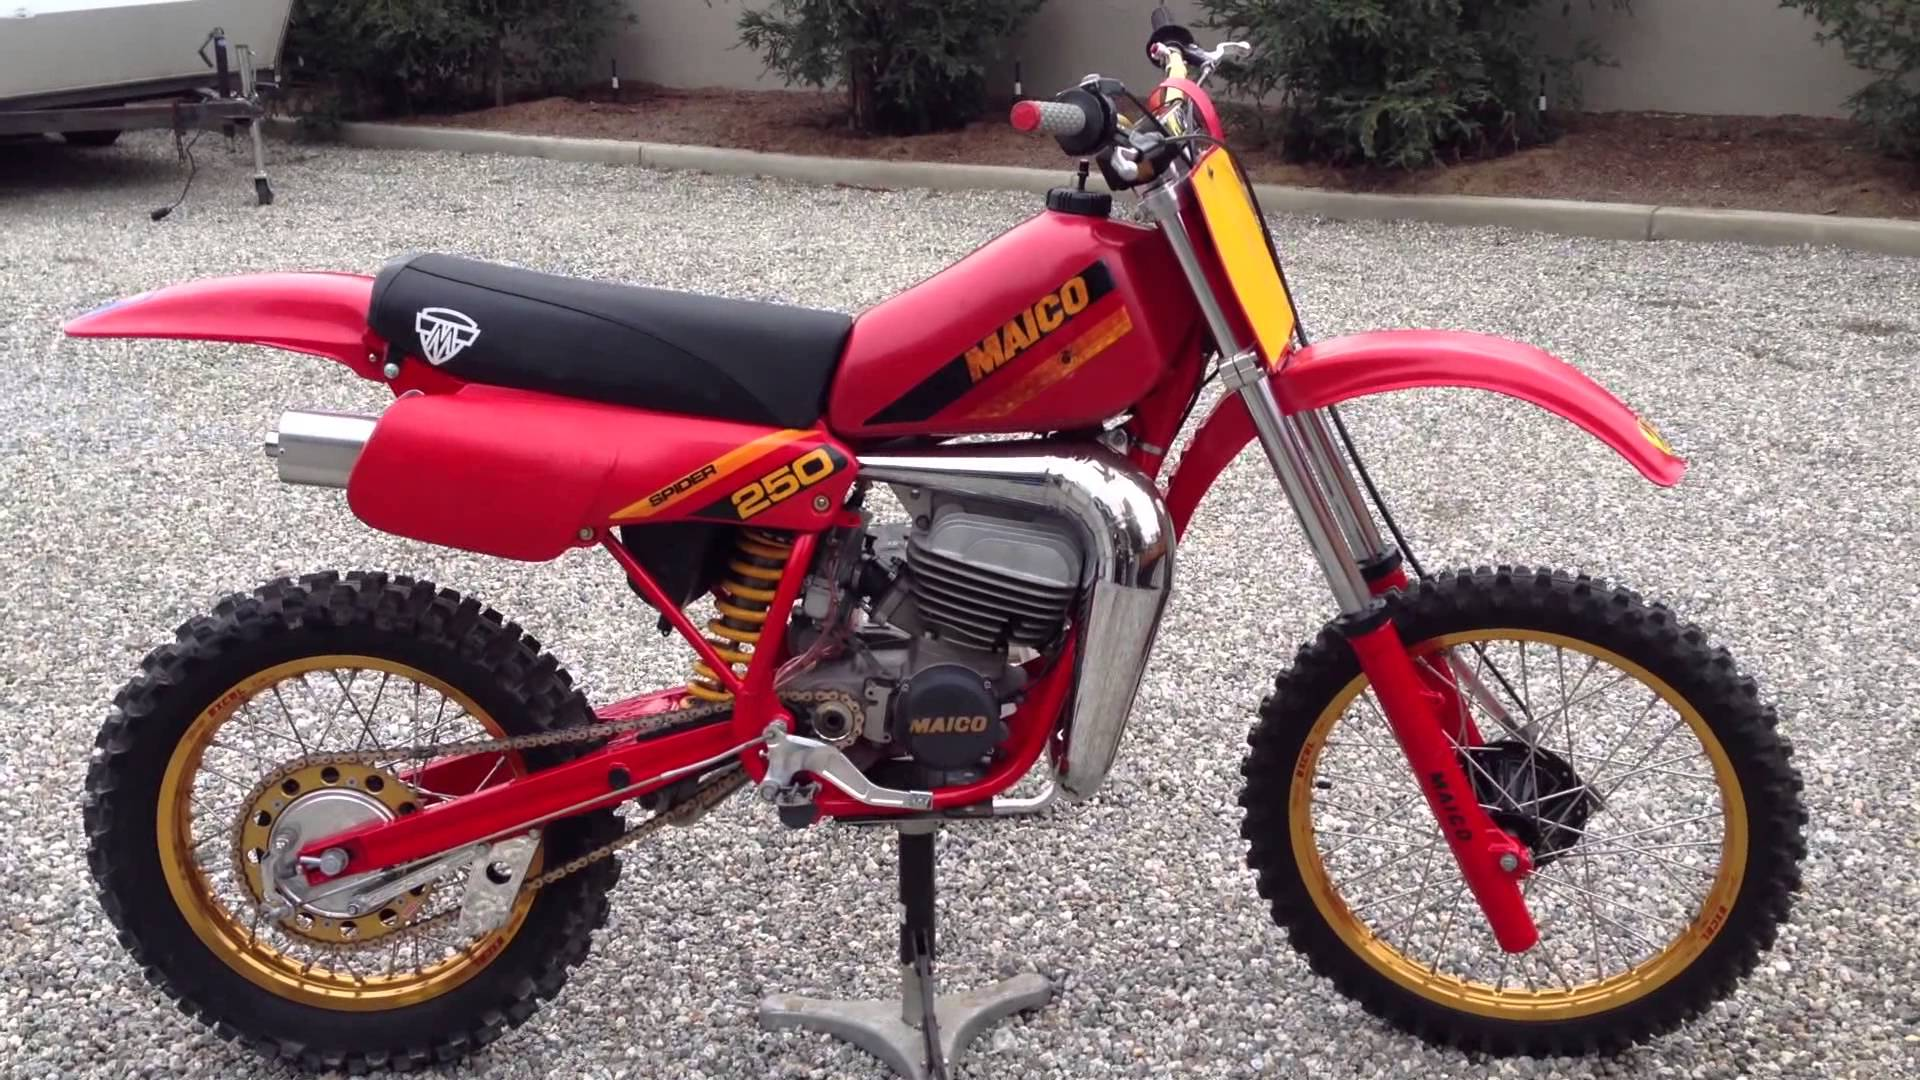 Maico GME 250 1985 images #102224